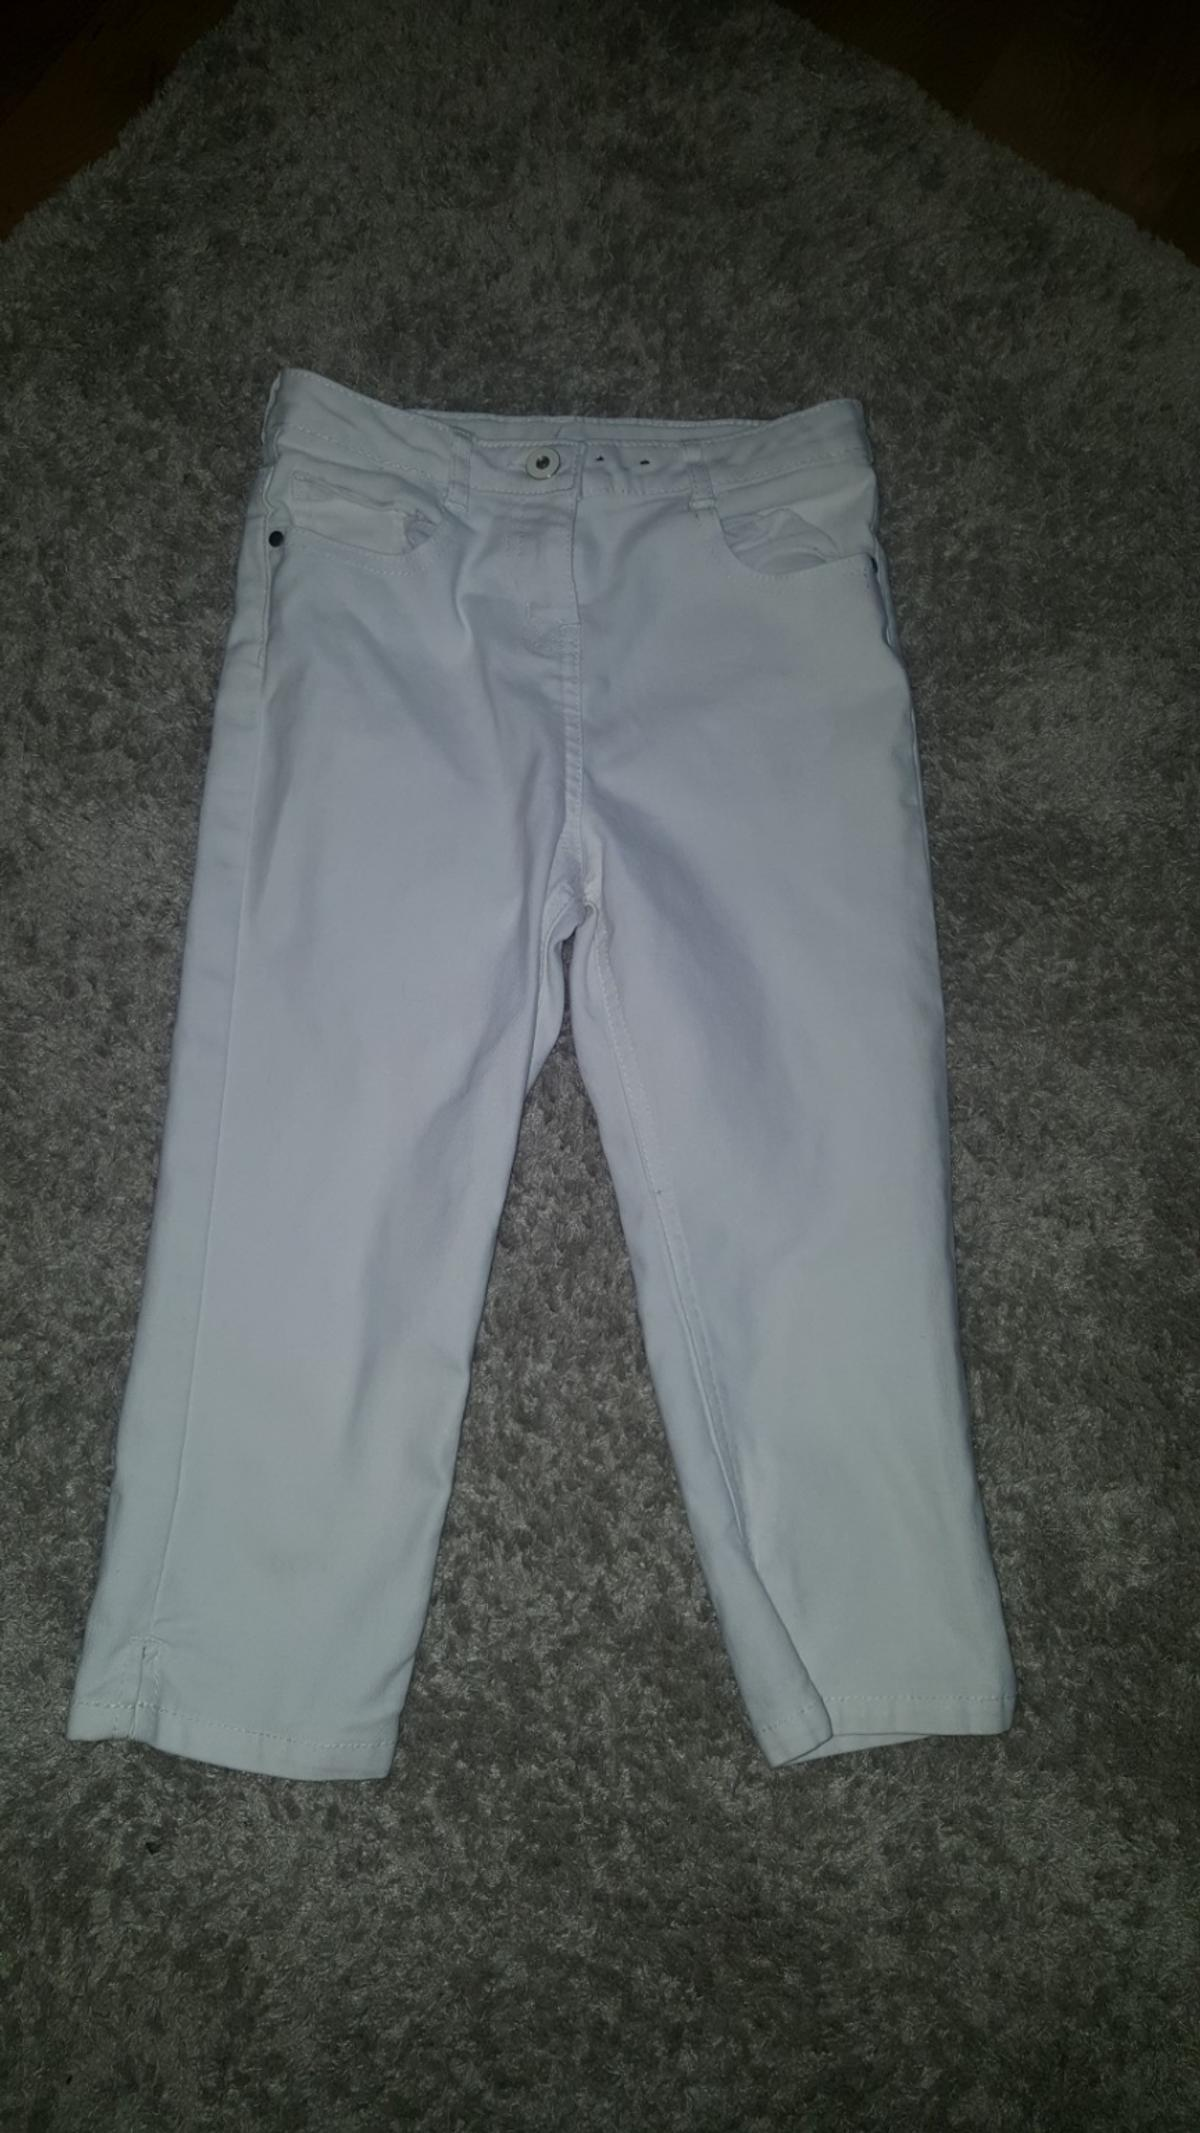 outlet boutique quality products new cheap girls three quarter length jeans 9 to 10 year in DY4 Sandwell for ...